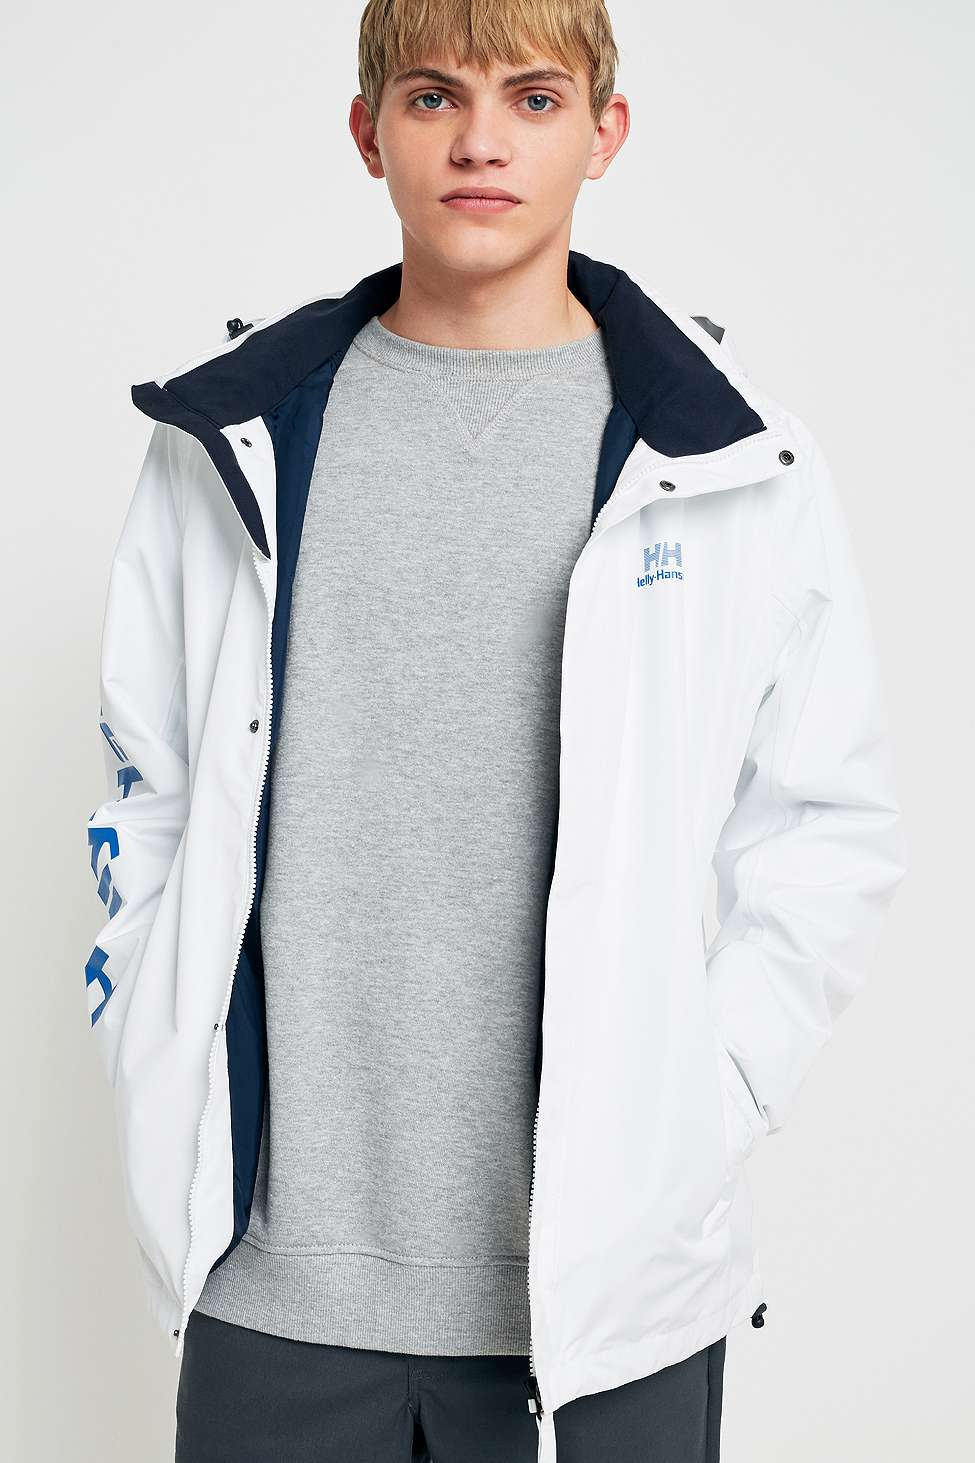 Helly Hansen White Crew Parka Jacket | Urban Outfitters